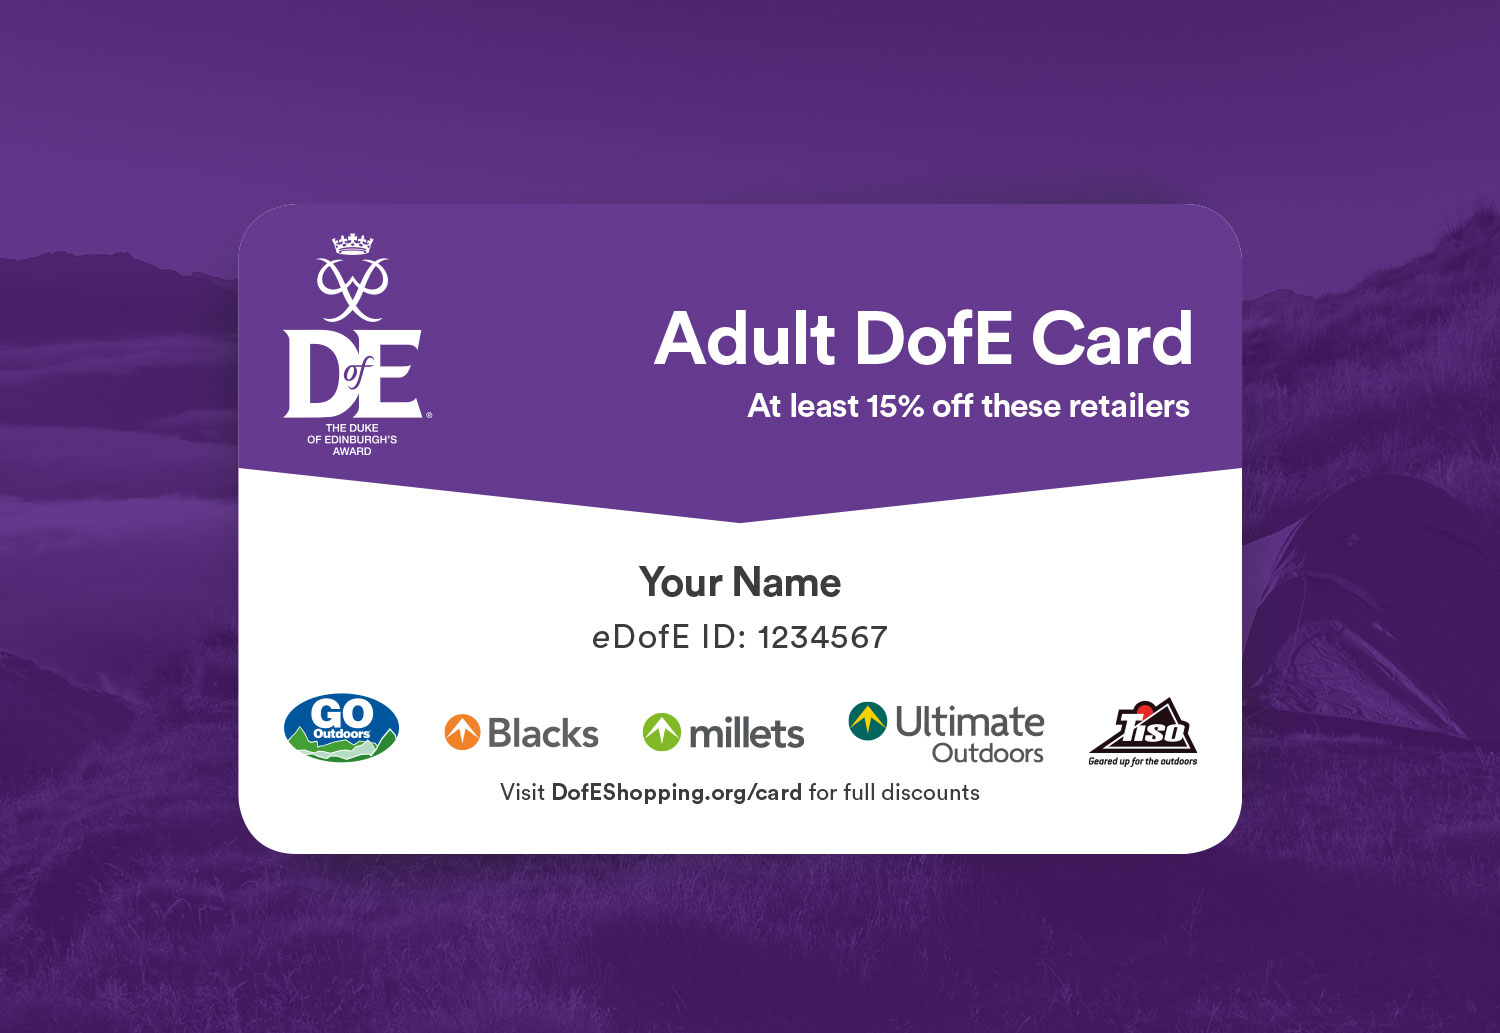 DofE Adult Reward Card Design